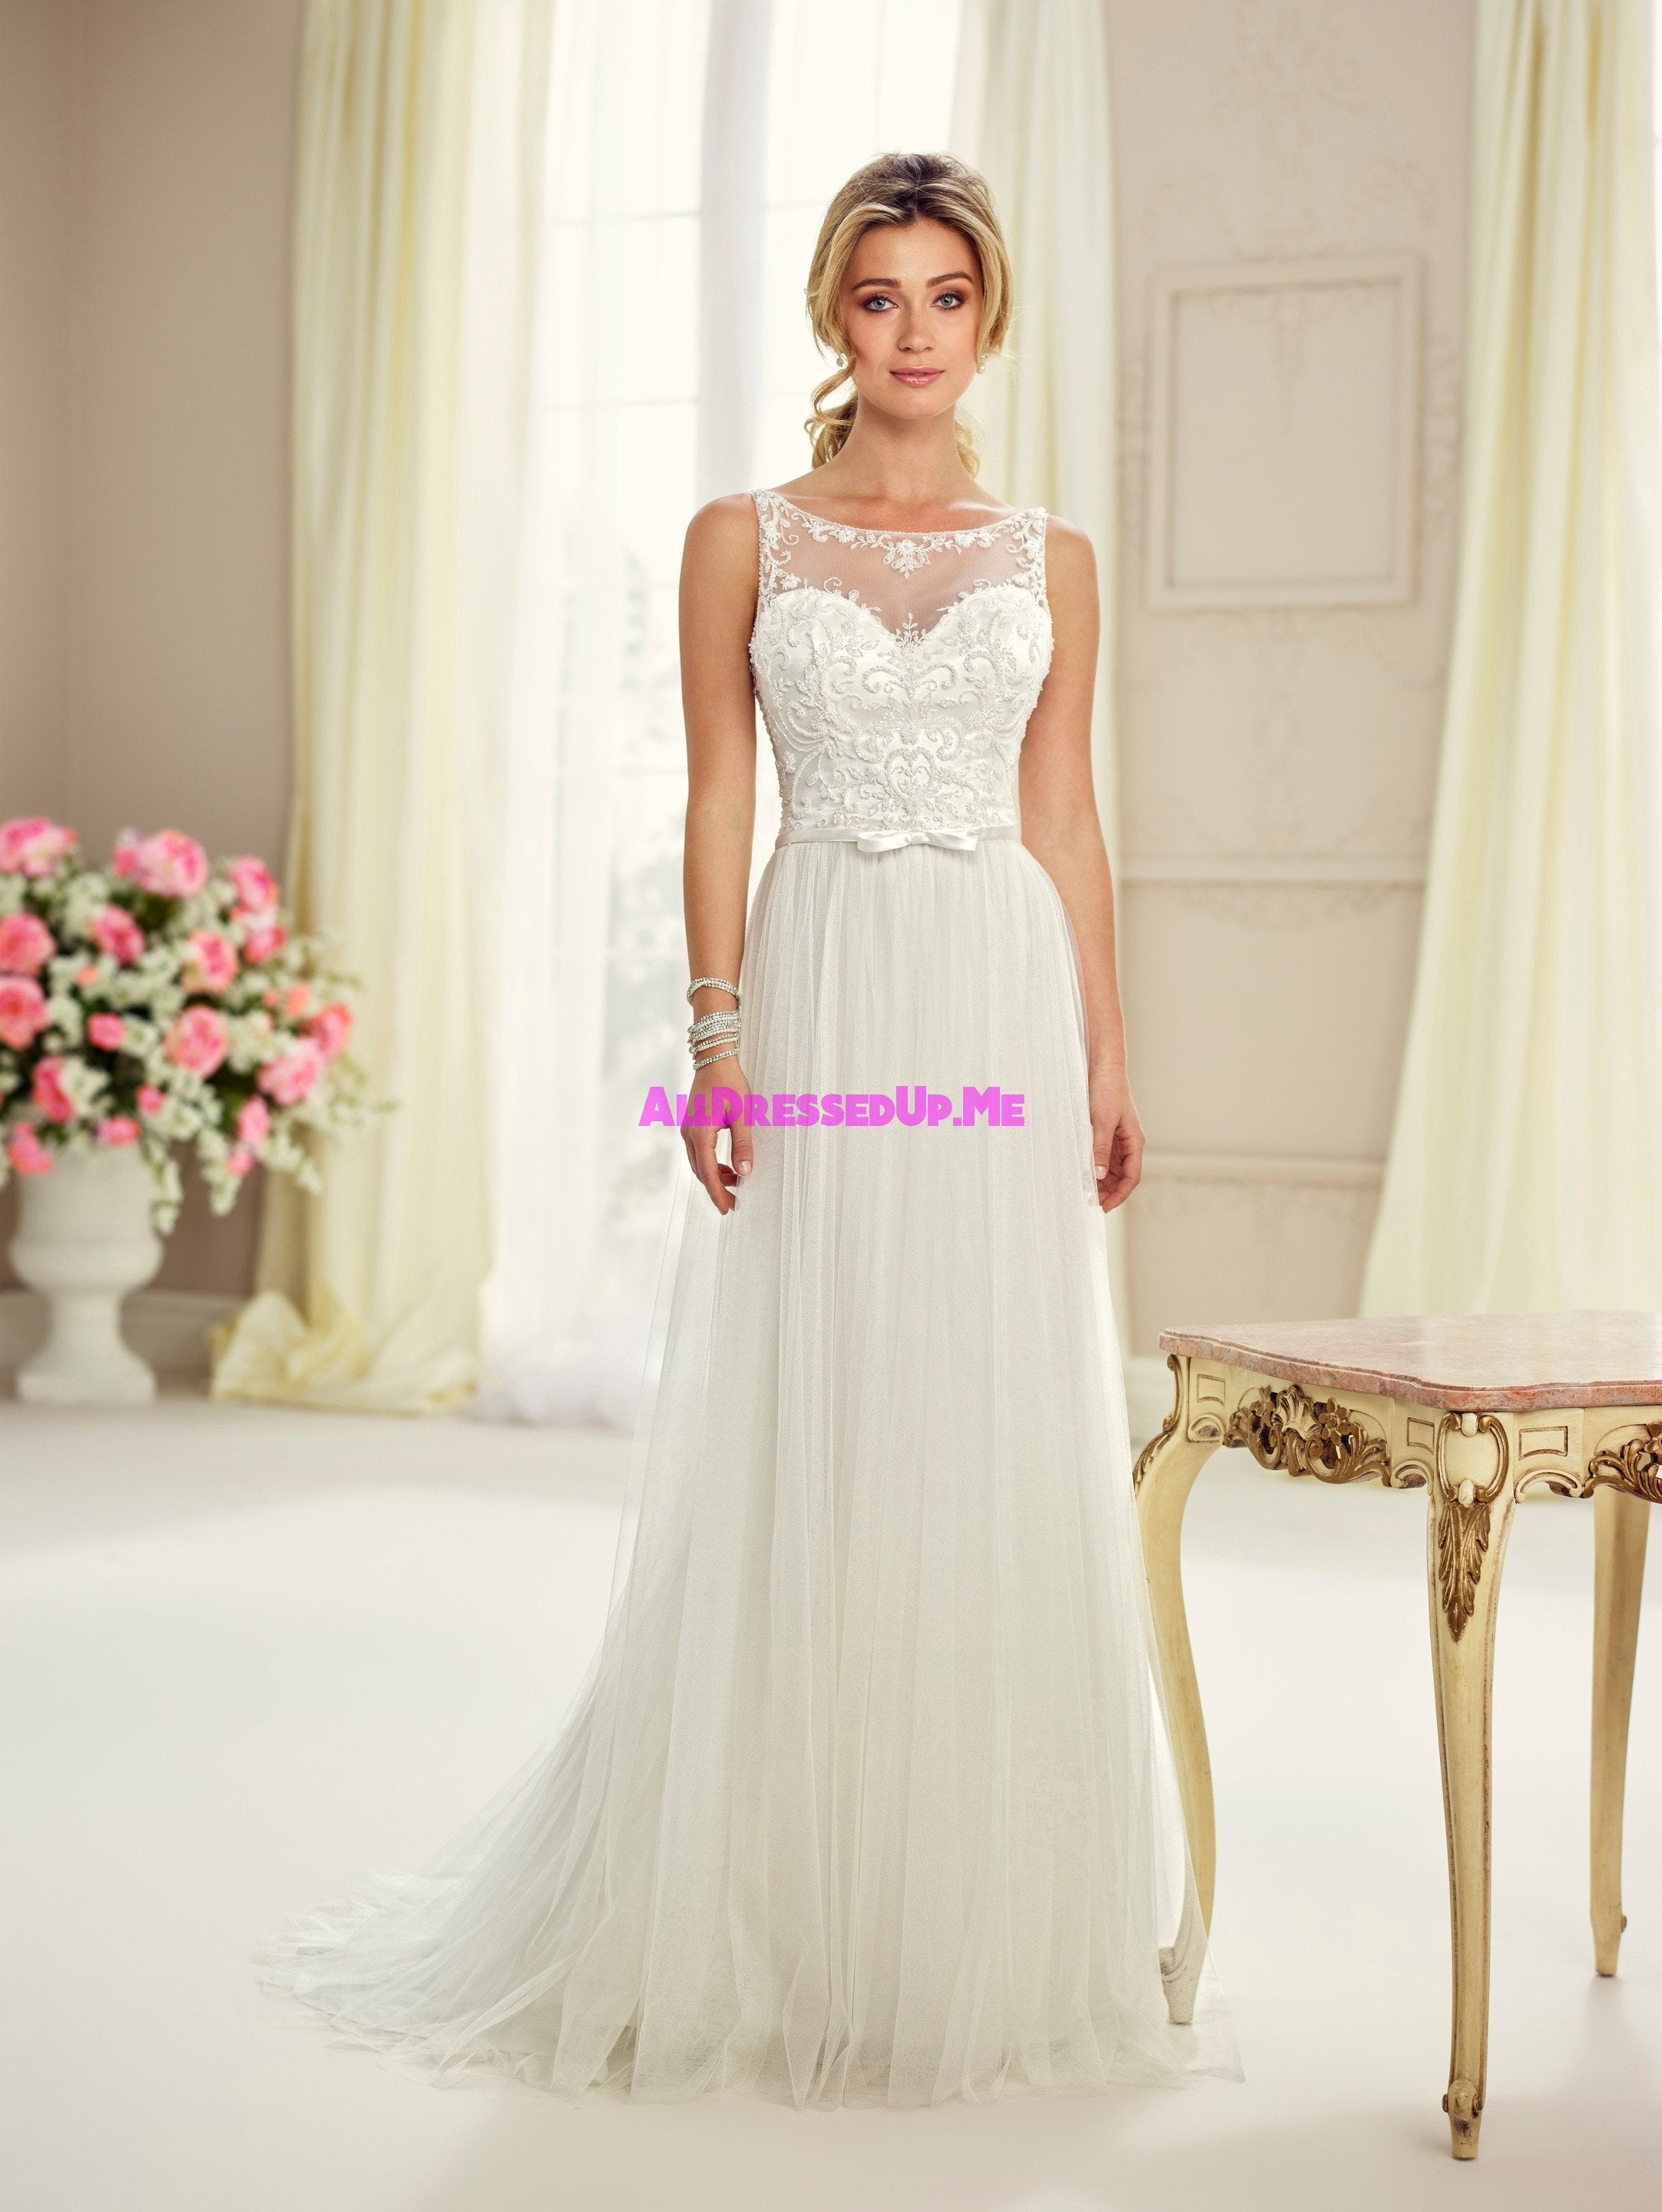 All dressed up wedding dressesbridal gownsprom dresses mon cheri bridal gown enchanting 217103 wedding dresses chattanooga hixson shops boutiques tennessee tn georgia ombrellifo Images